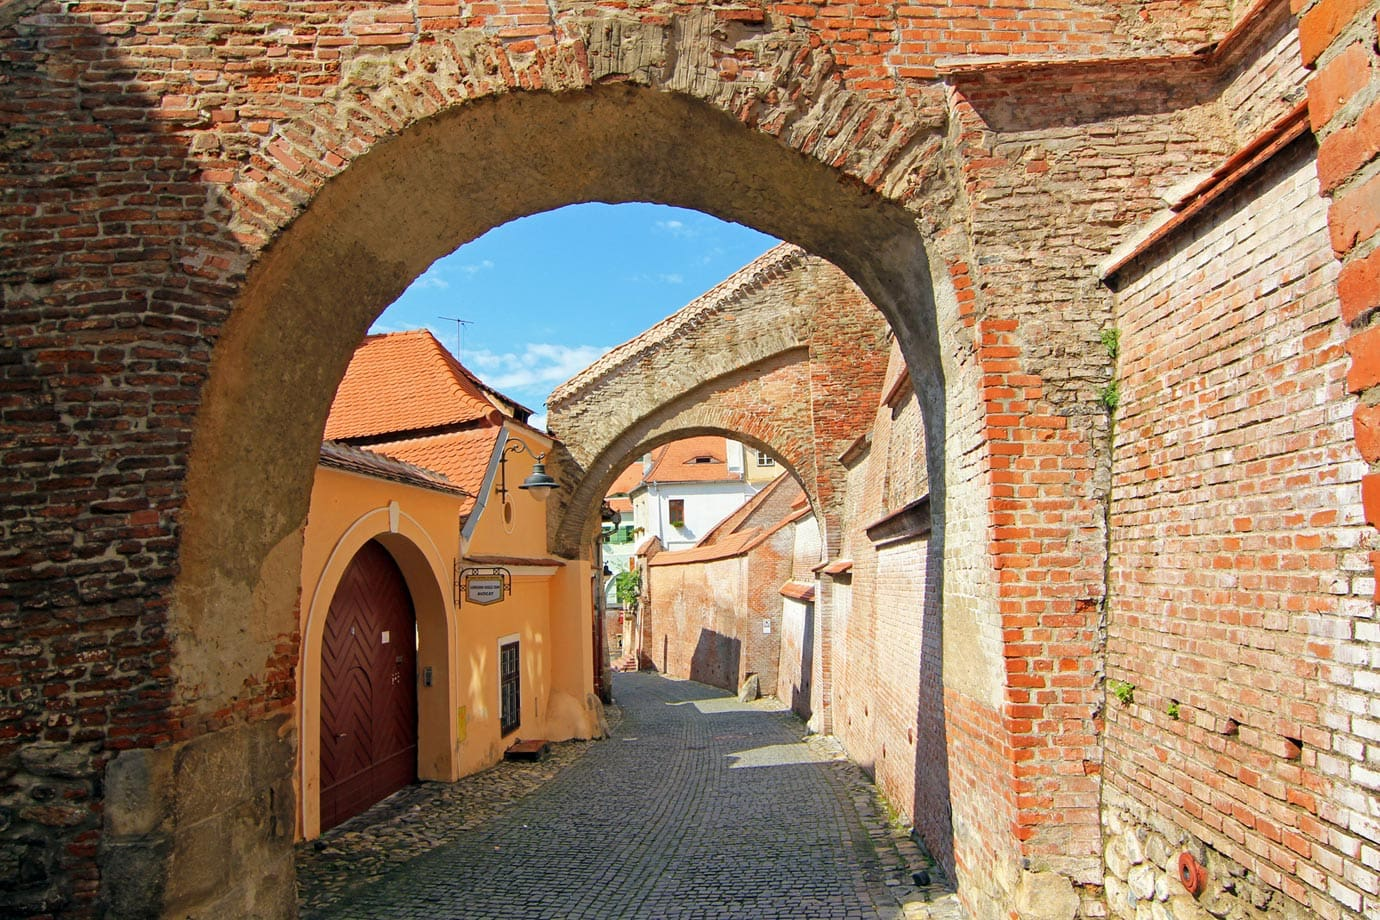 Walking the cobbled streets of Sibiu